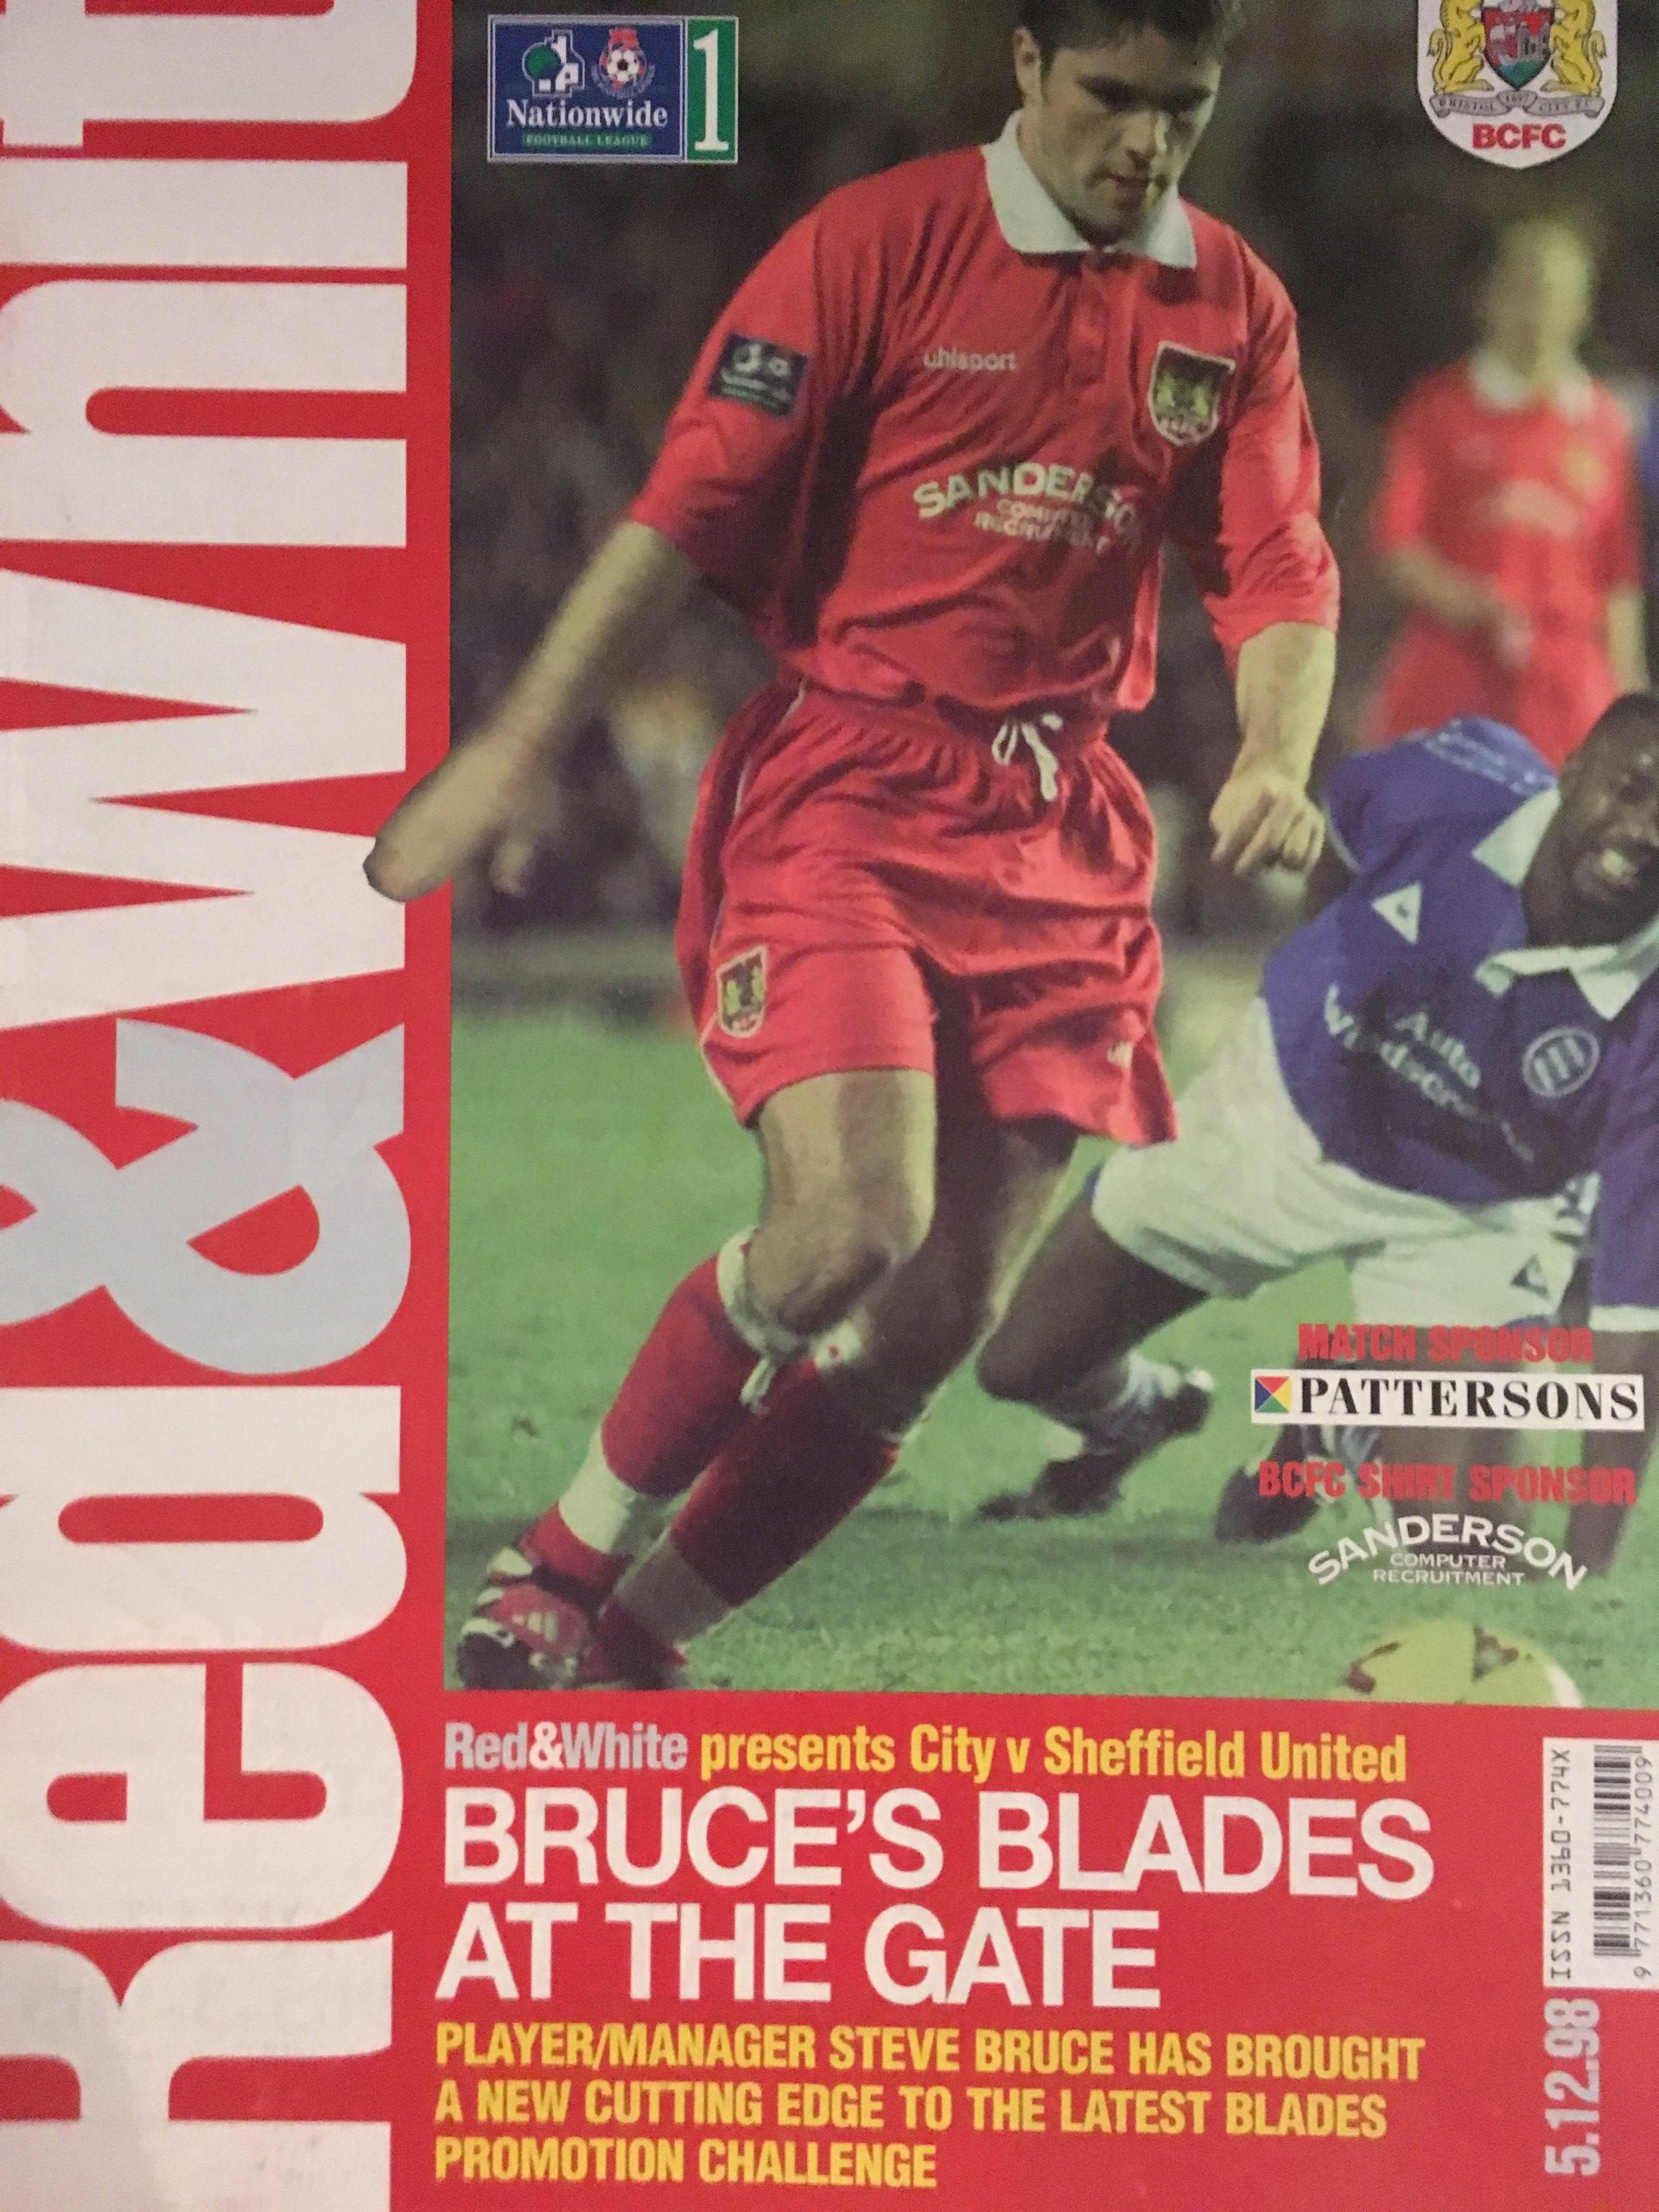 Bristol City v Sheffield United 05-12-1998 Programme